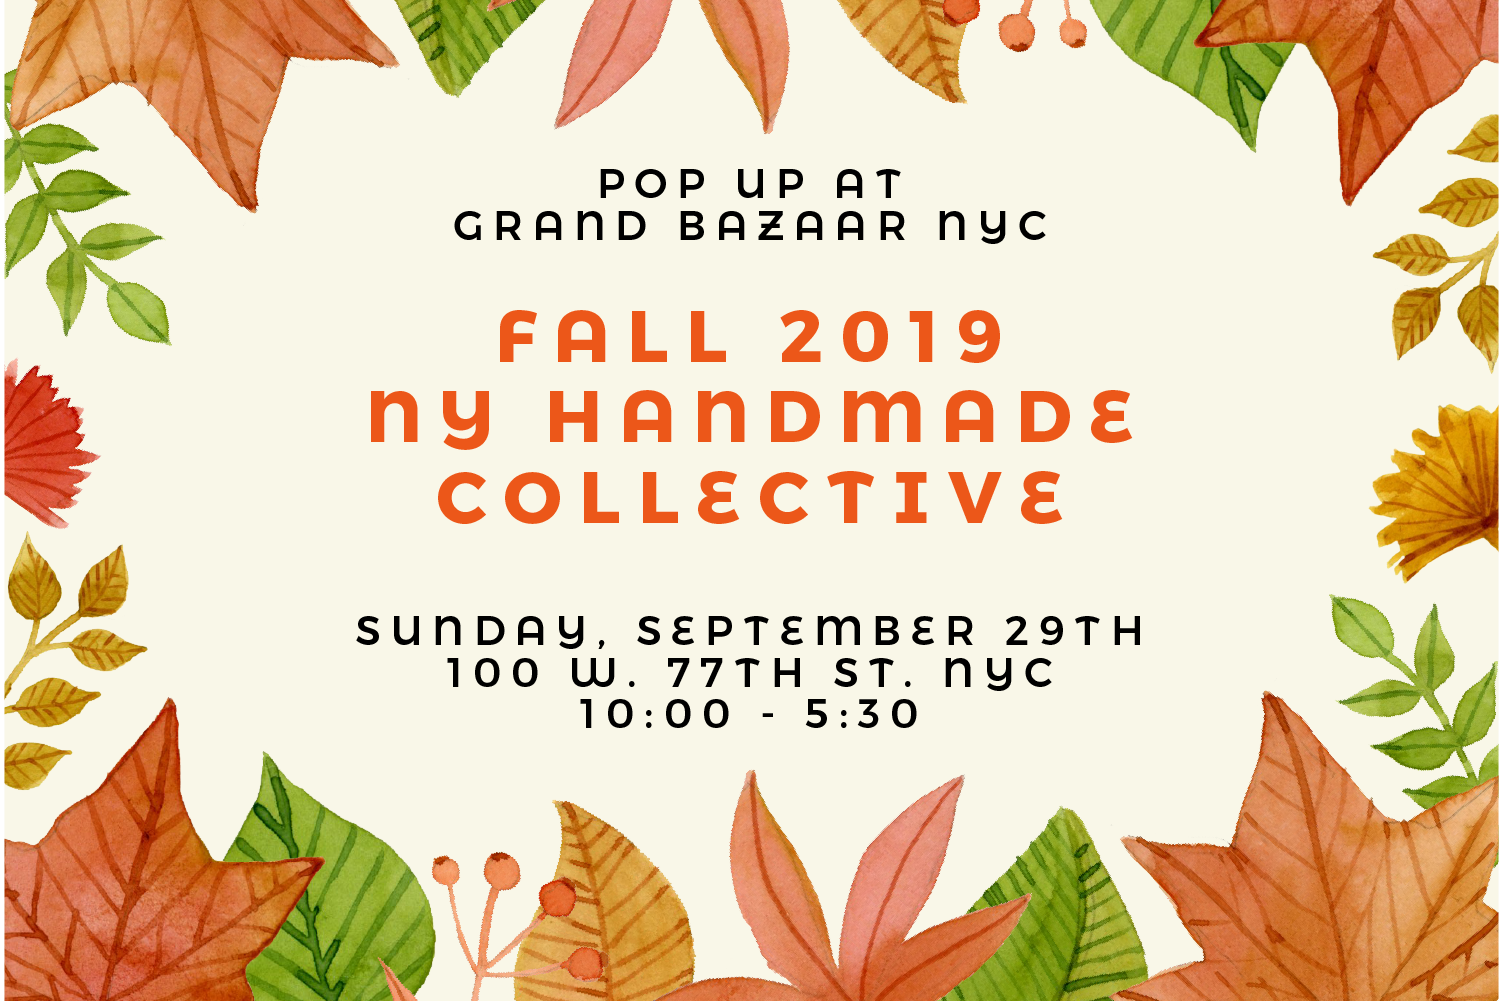 NY Handmade Collective Pop-up - Fall - Meet in-person and shop directly form 40 of the best makers of NY Handmade Collective. These multi-talented artisans will be joining the 150+ vendors of the Grand Bazaar NYC Find creative craftsmanship and pure talent at full display! Take this opportunity to connect with these gifted Esty sellers, hear their stories and shop a few amazing pieces.Sunday September 29th, 10am-5:30pmGrand Bazaar NYC, 100 W 77th St, New York, New York 10024